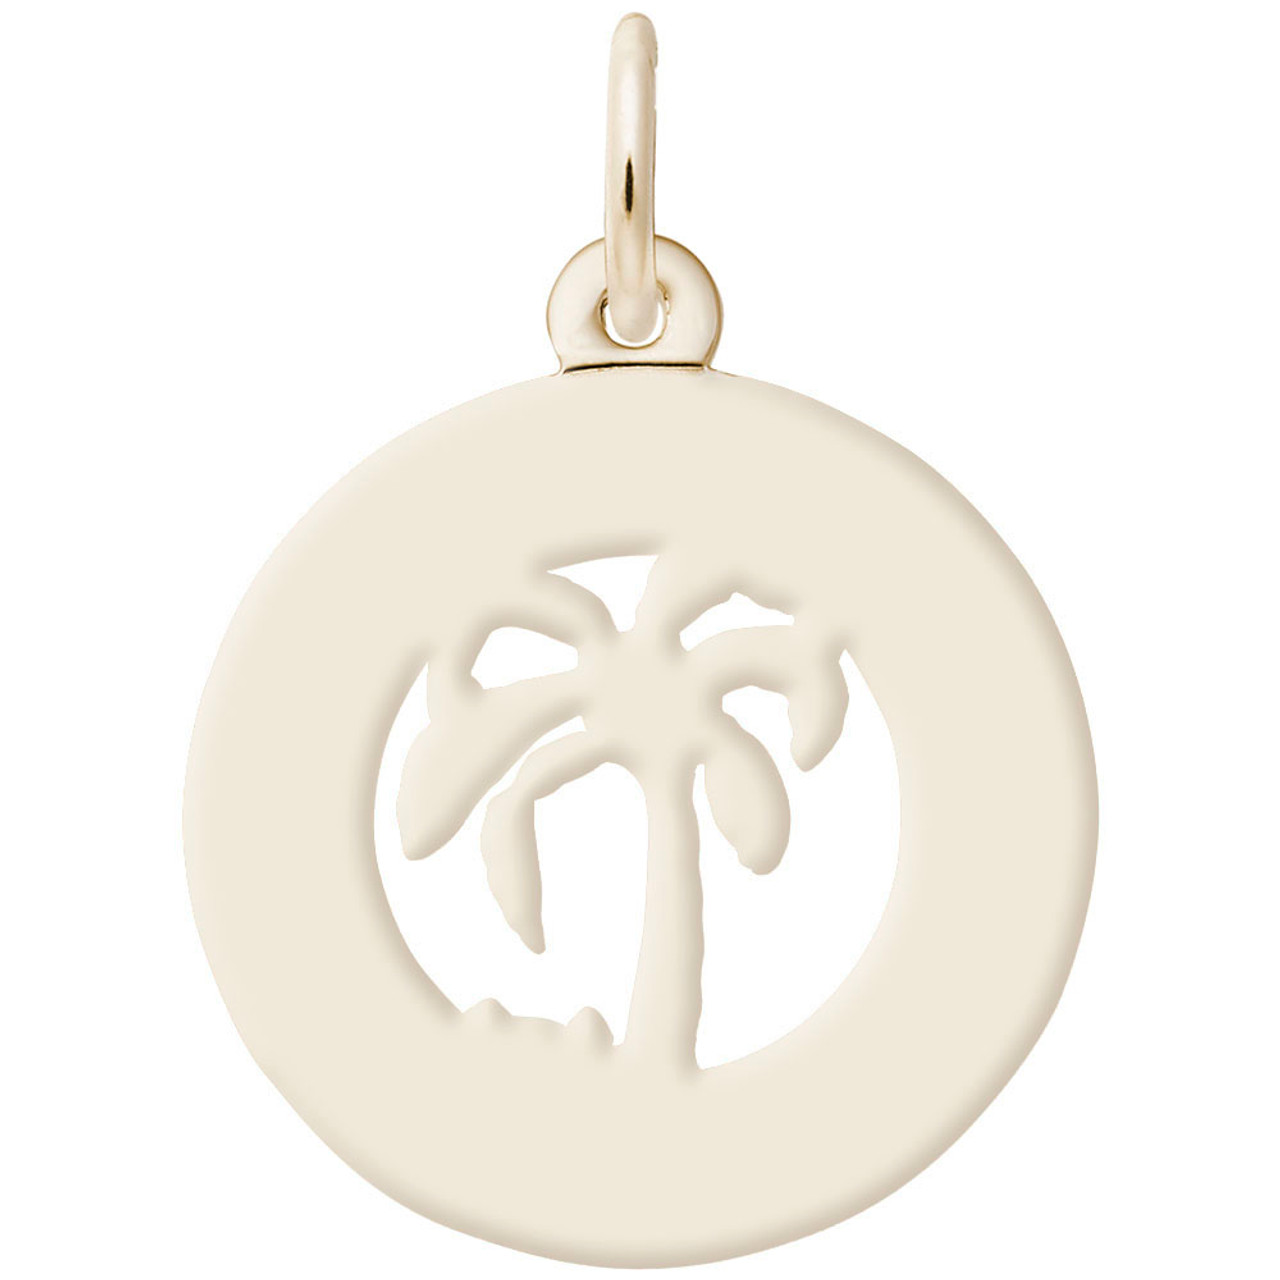 """Florida"" Palm Tree Ring Charm with Pearl Accent - Engraveable Backside - Gold Plate, 10k Gold, 14k Gold"